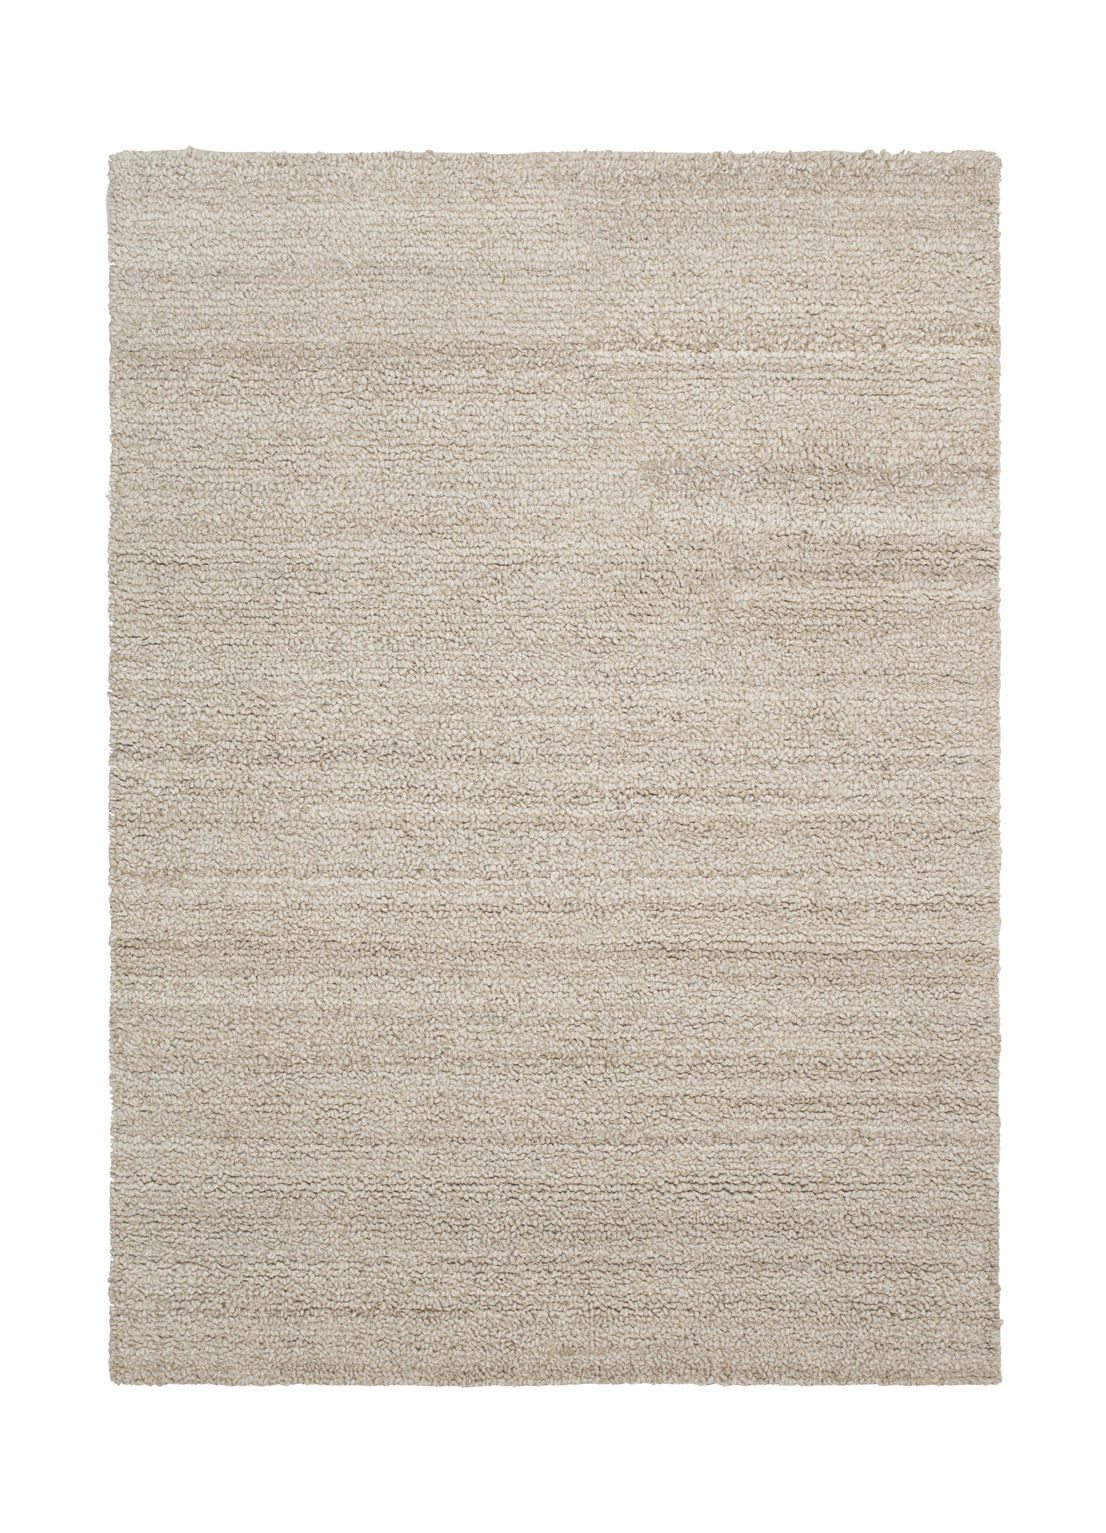 FermLiving Shade Loop Rug